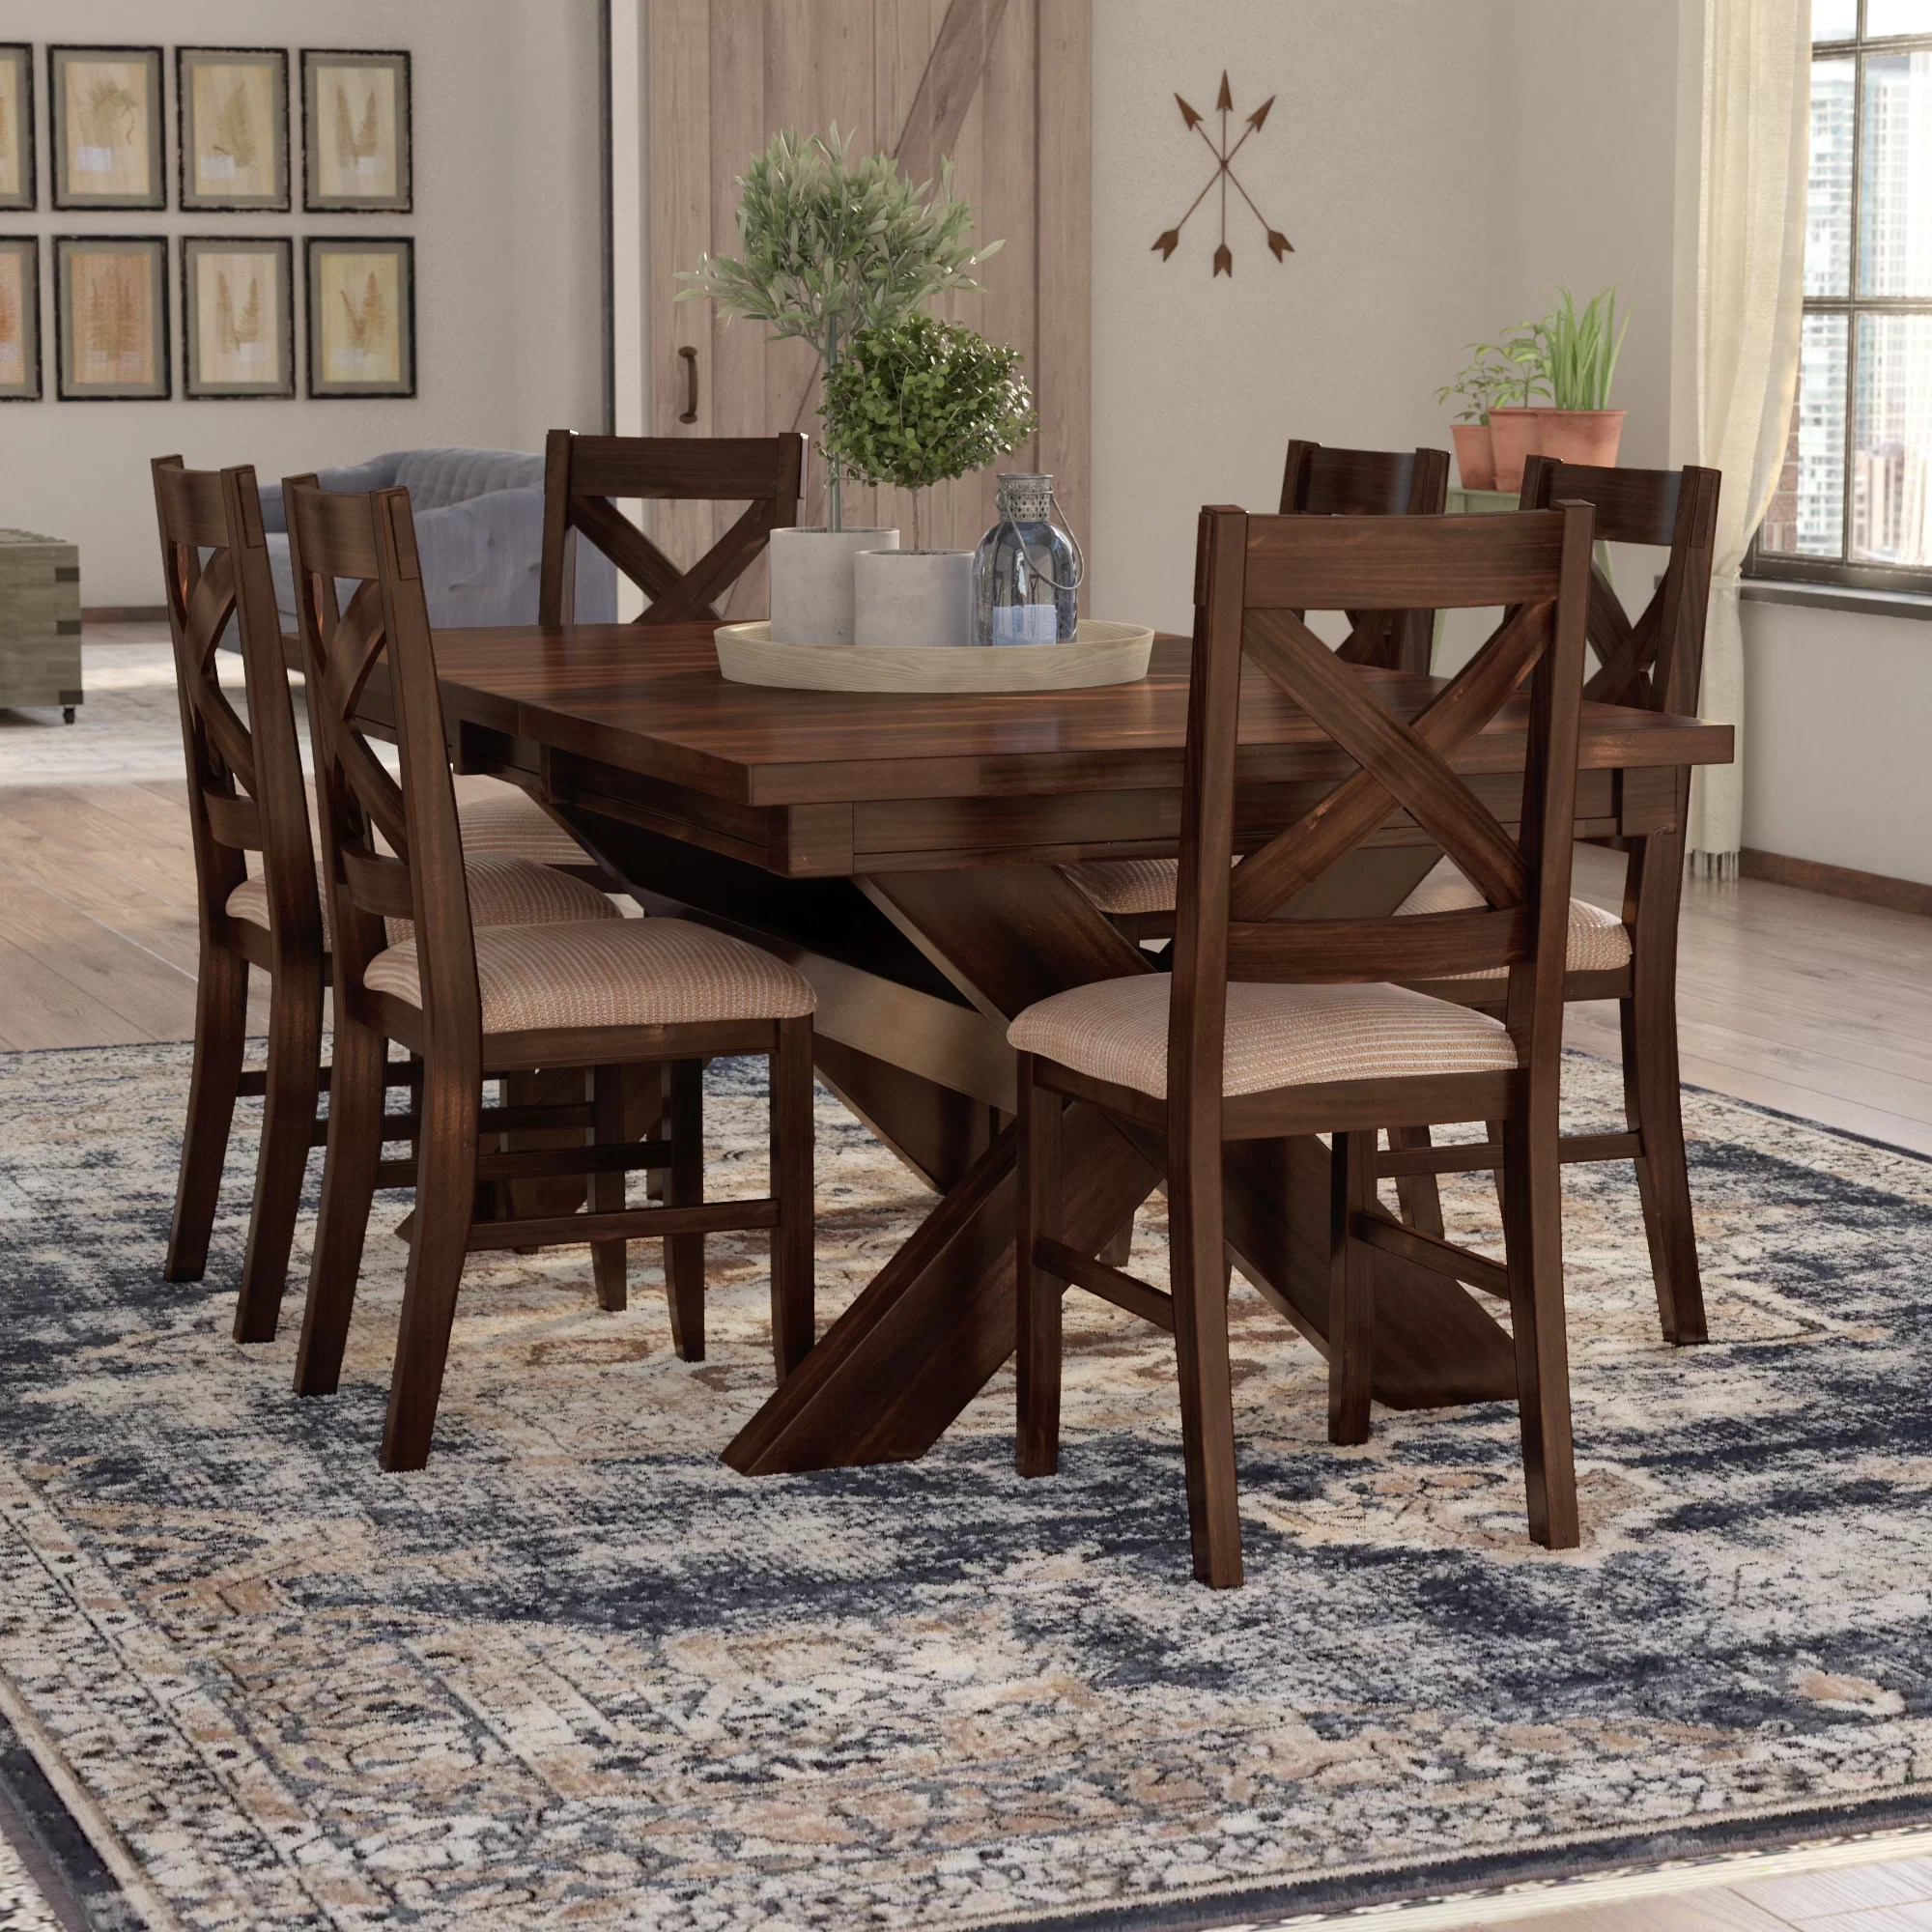 Modern Dining Set Isabell 7 Piece Solid Wood Dining Set